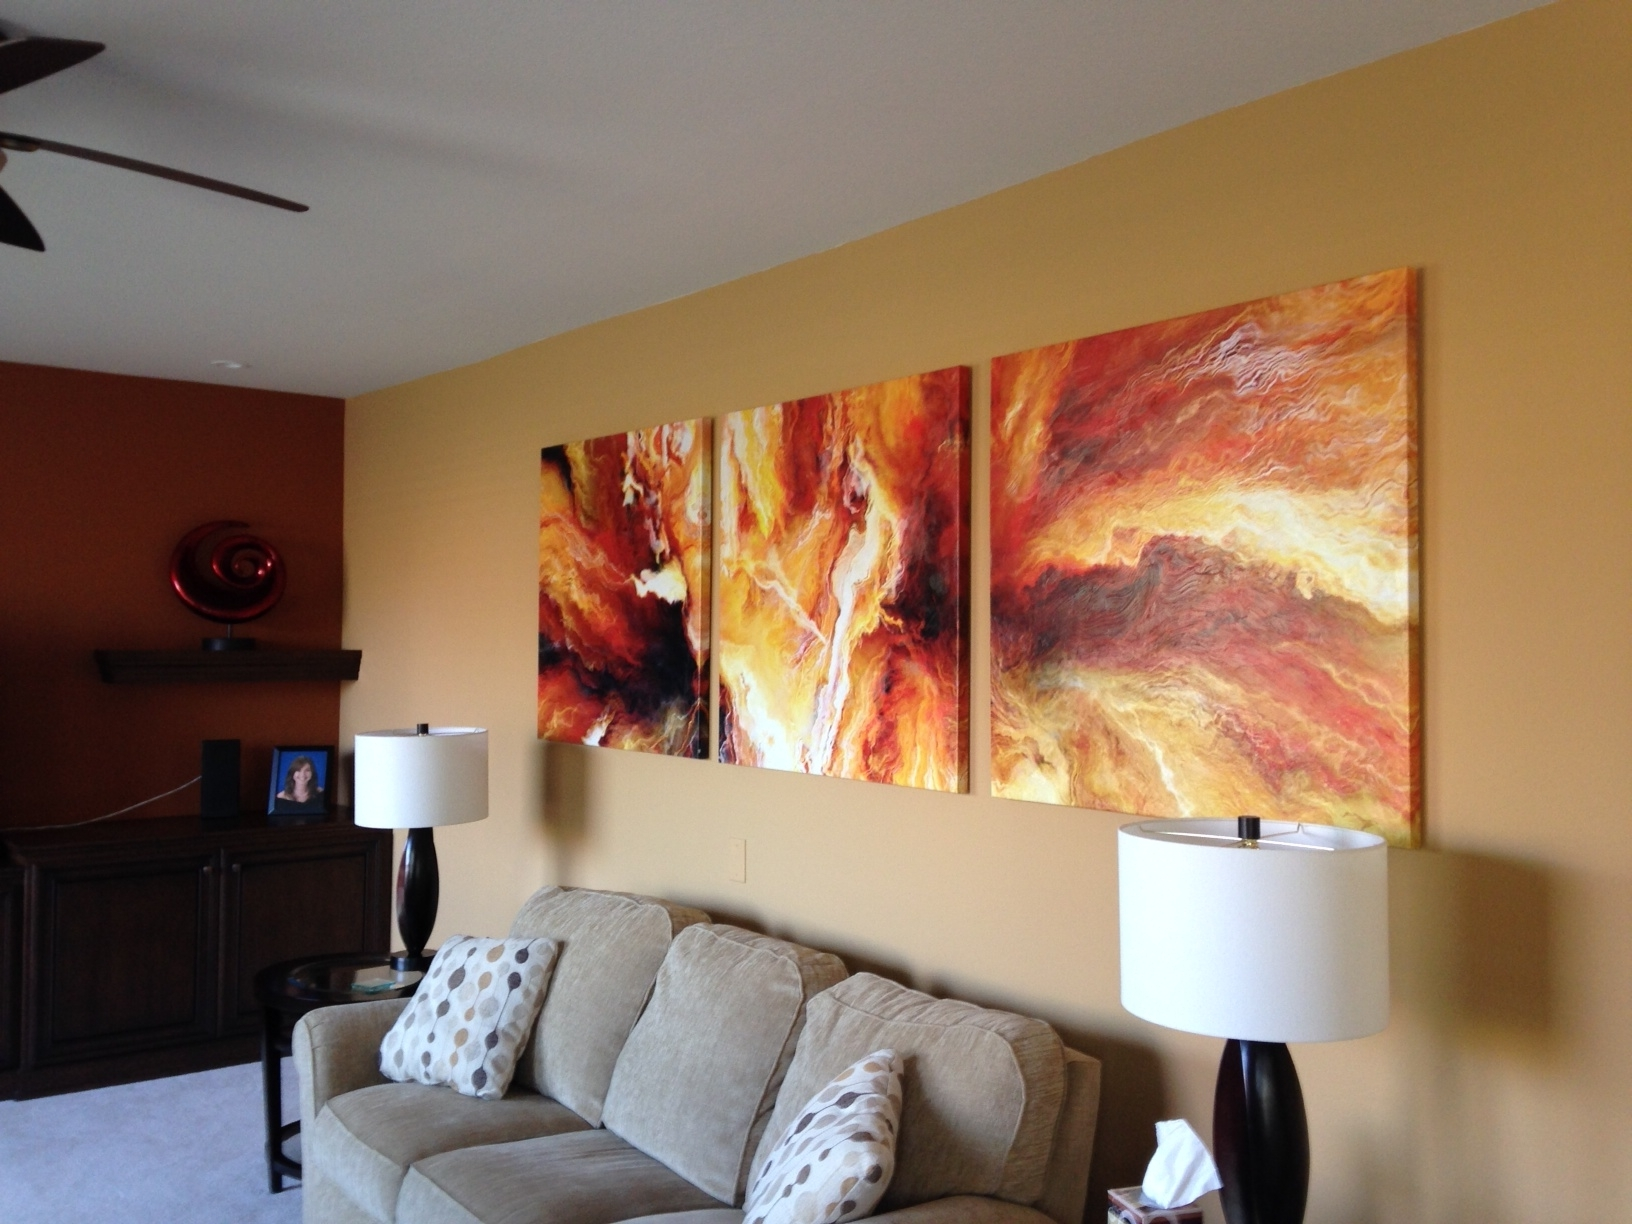 33 Vibrant Oversized Wall Art For Living Room Decorations Diy Throughout Popular Cheap Large Canvas Wall Art (View 3 of 20)